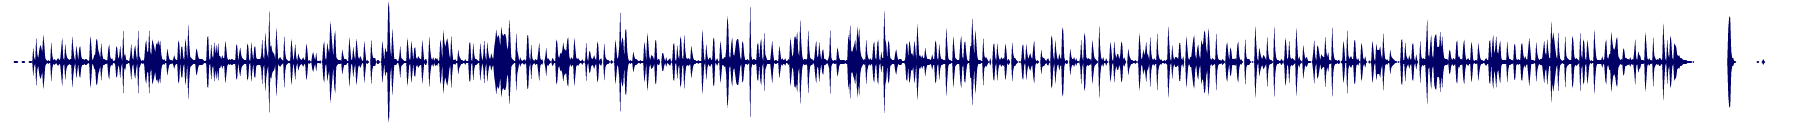 waveform of track #72562